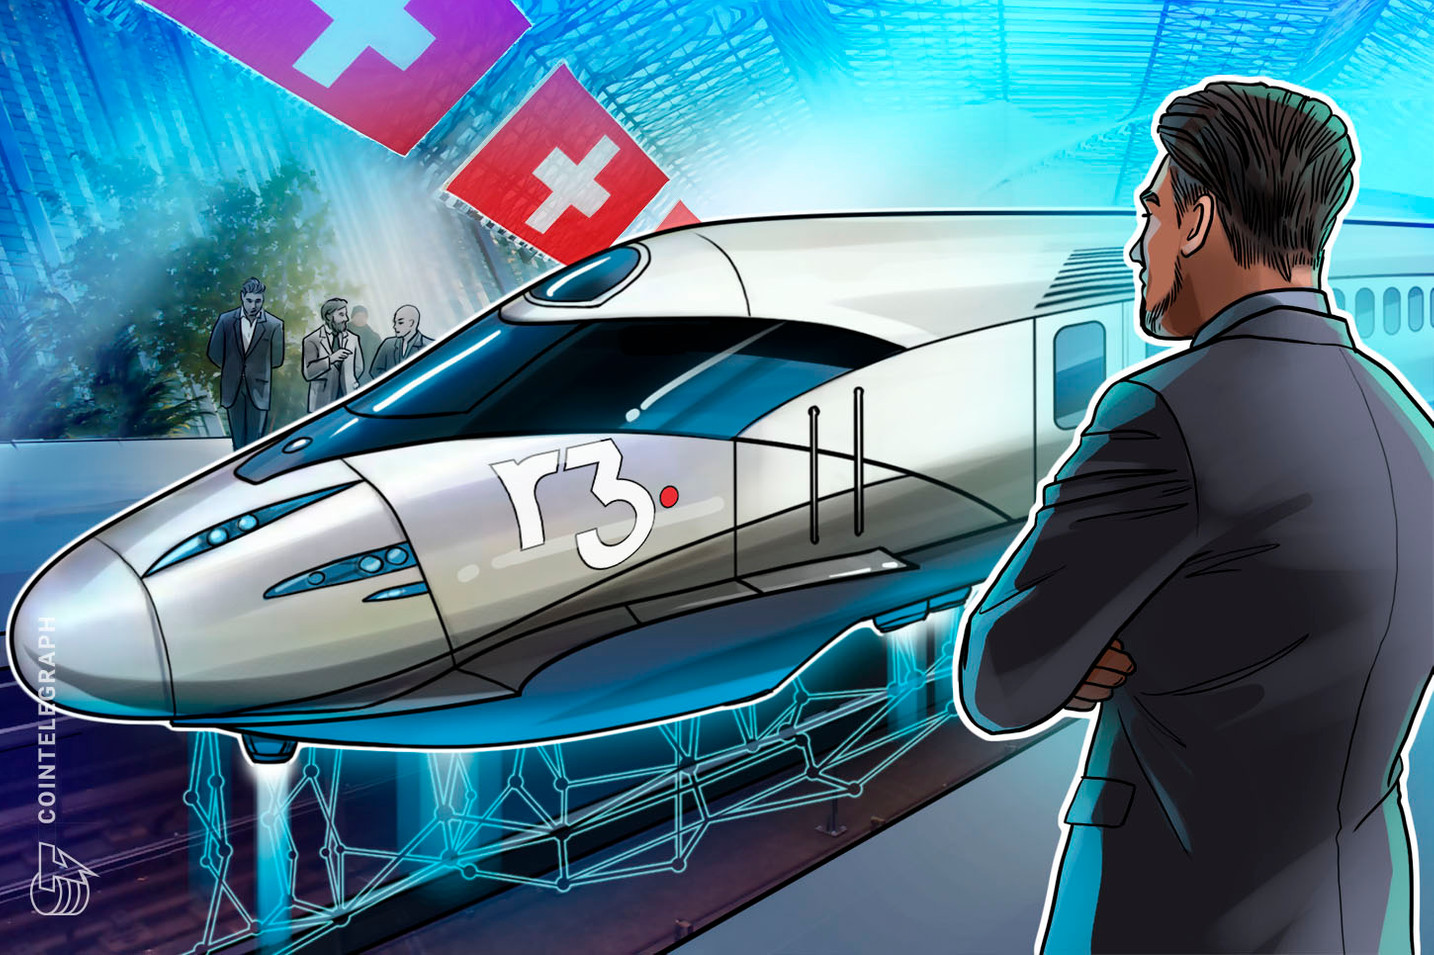 Swiss Stock Exchange SIX to Use R3 Corda Enterprise for Blockchain-Based Trading Platform